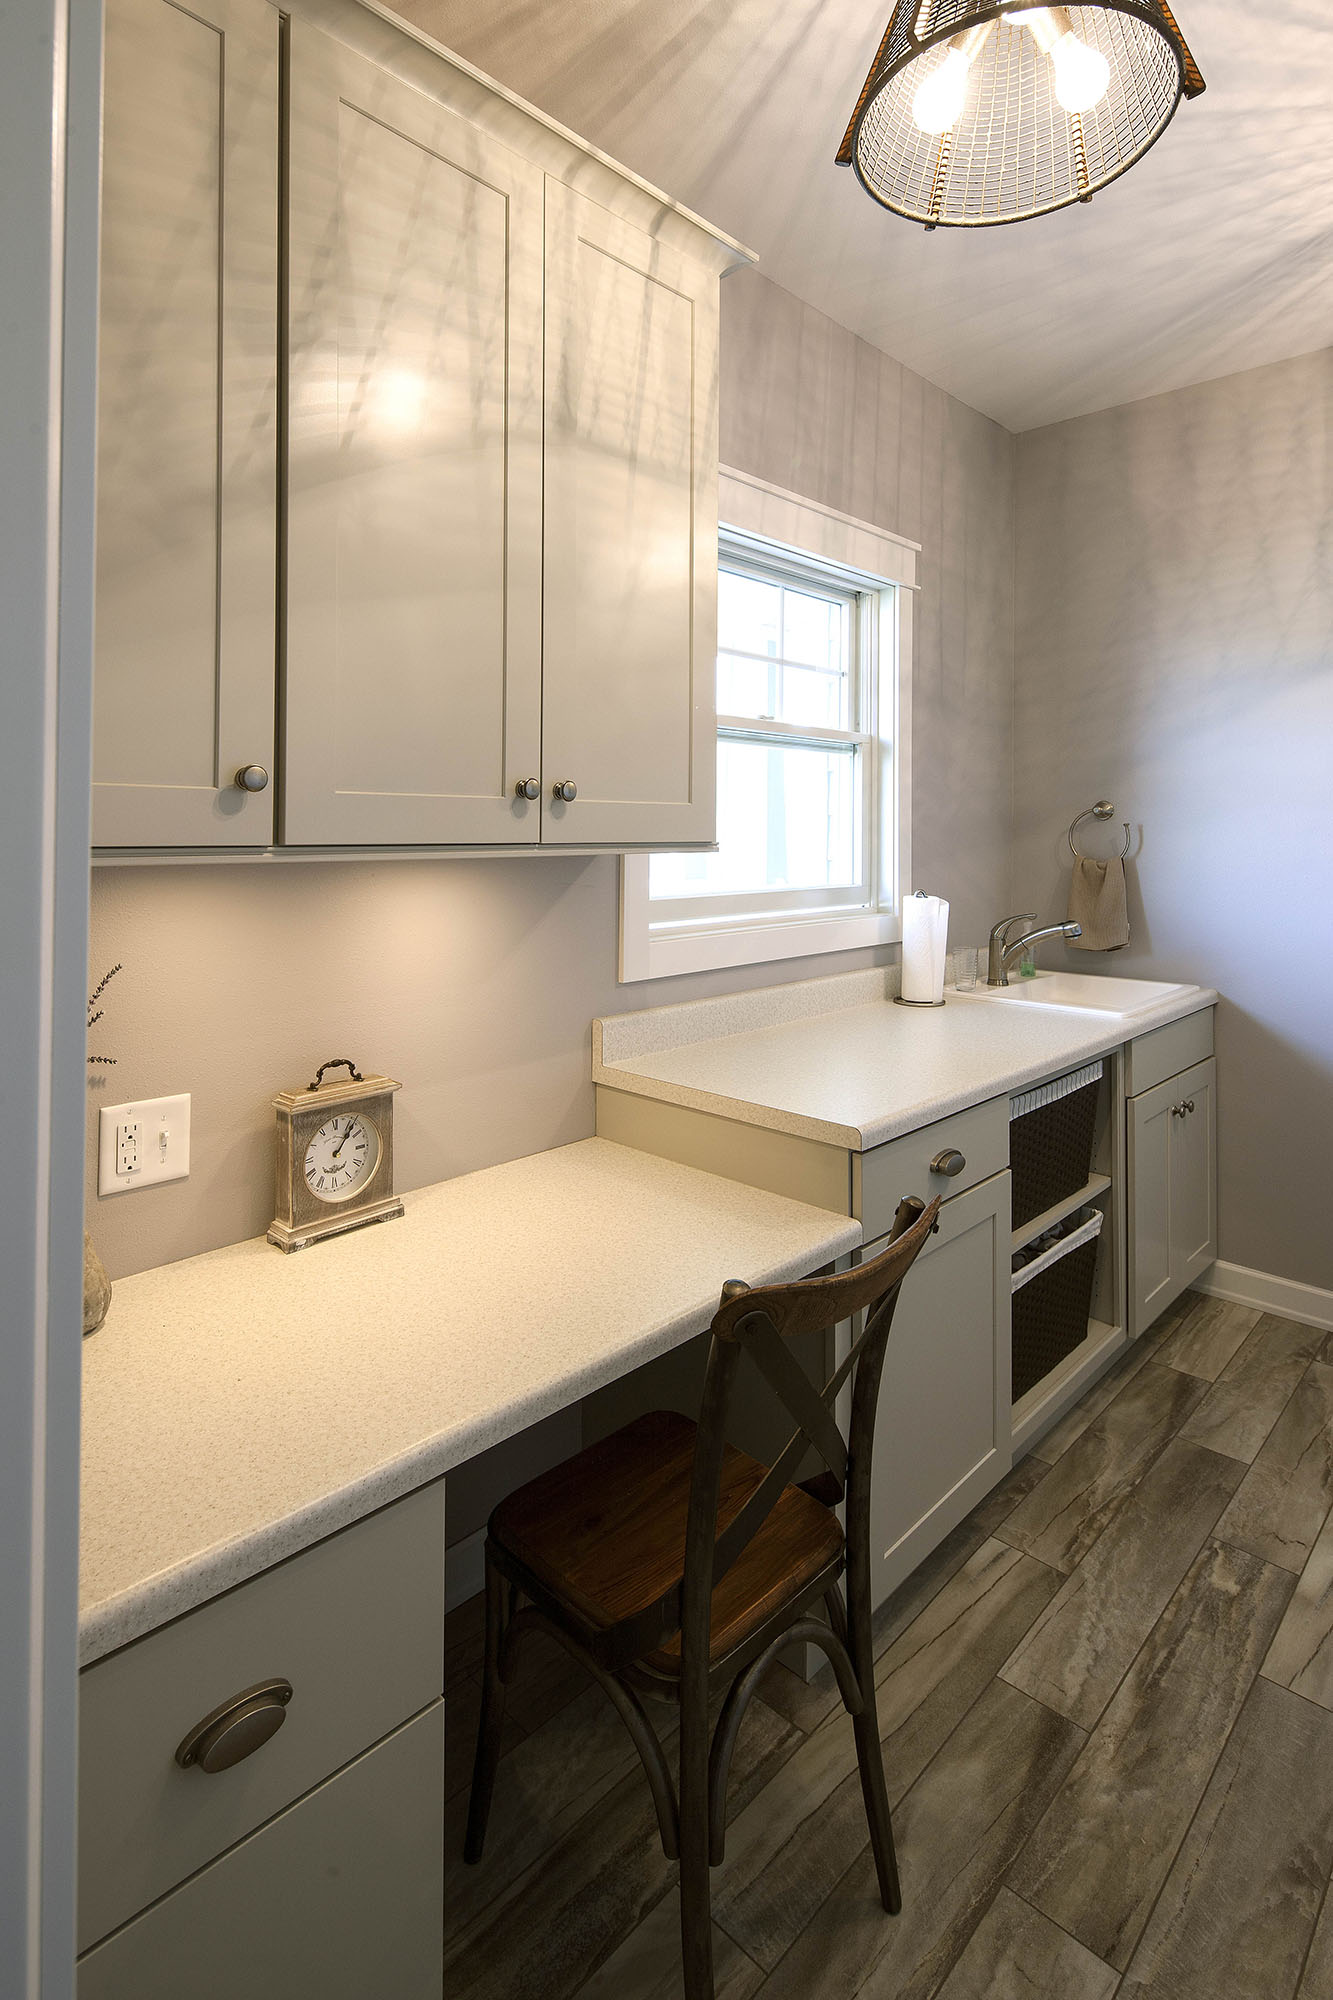 Painted laundry room cabinets in Oyster by Showplace Cabinetry - view 1